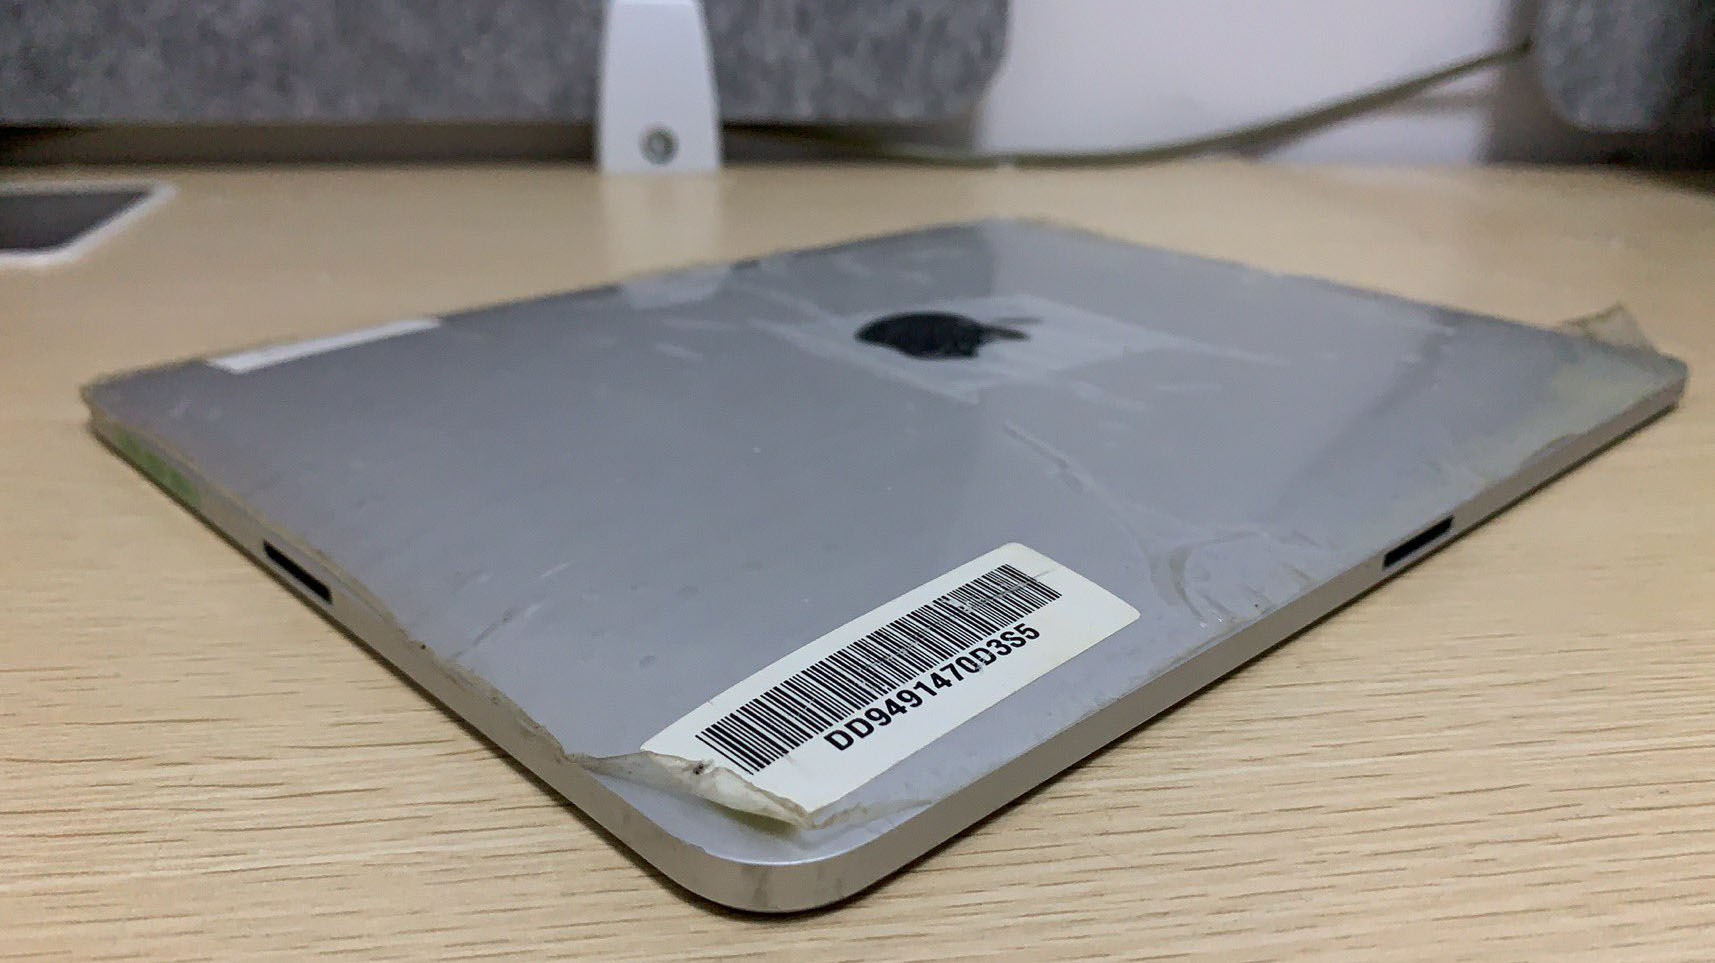 iPad prototype with two charging ports